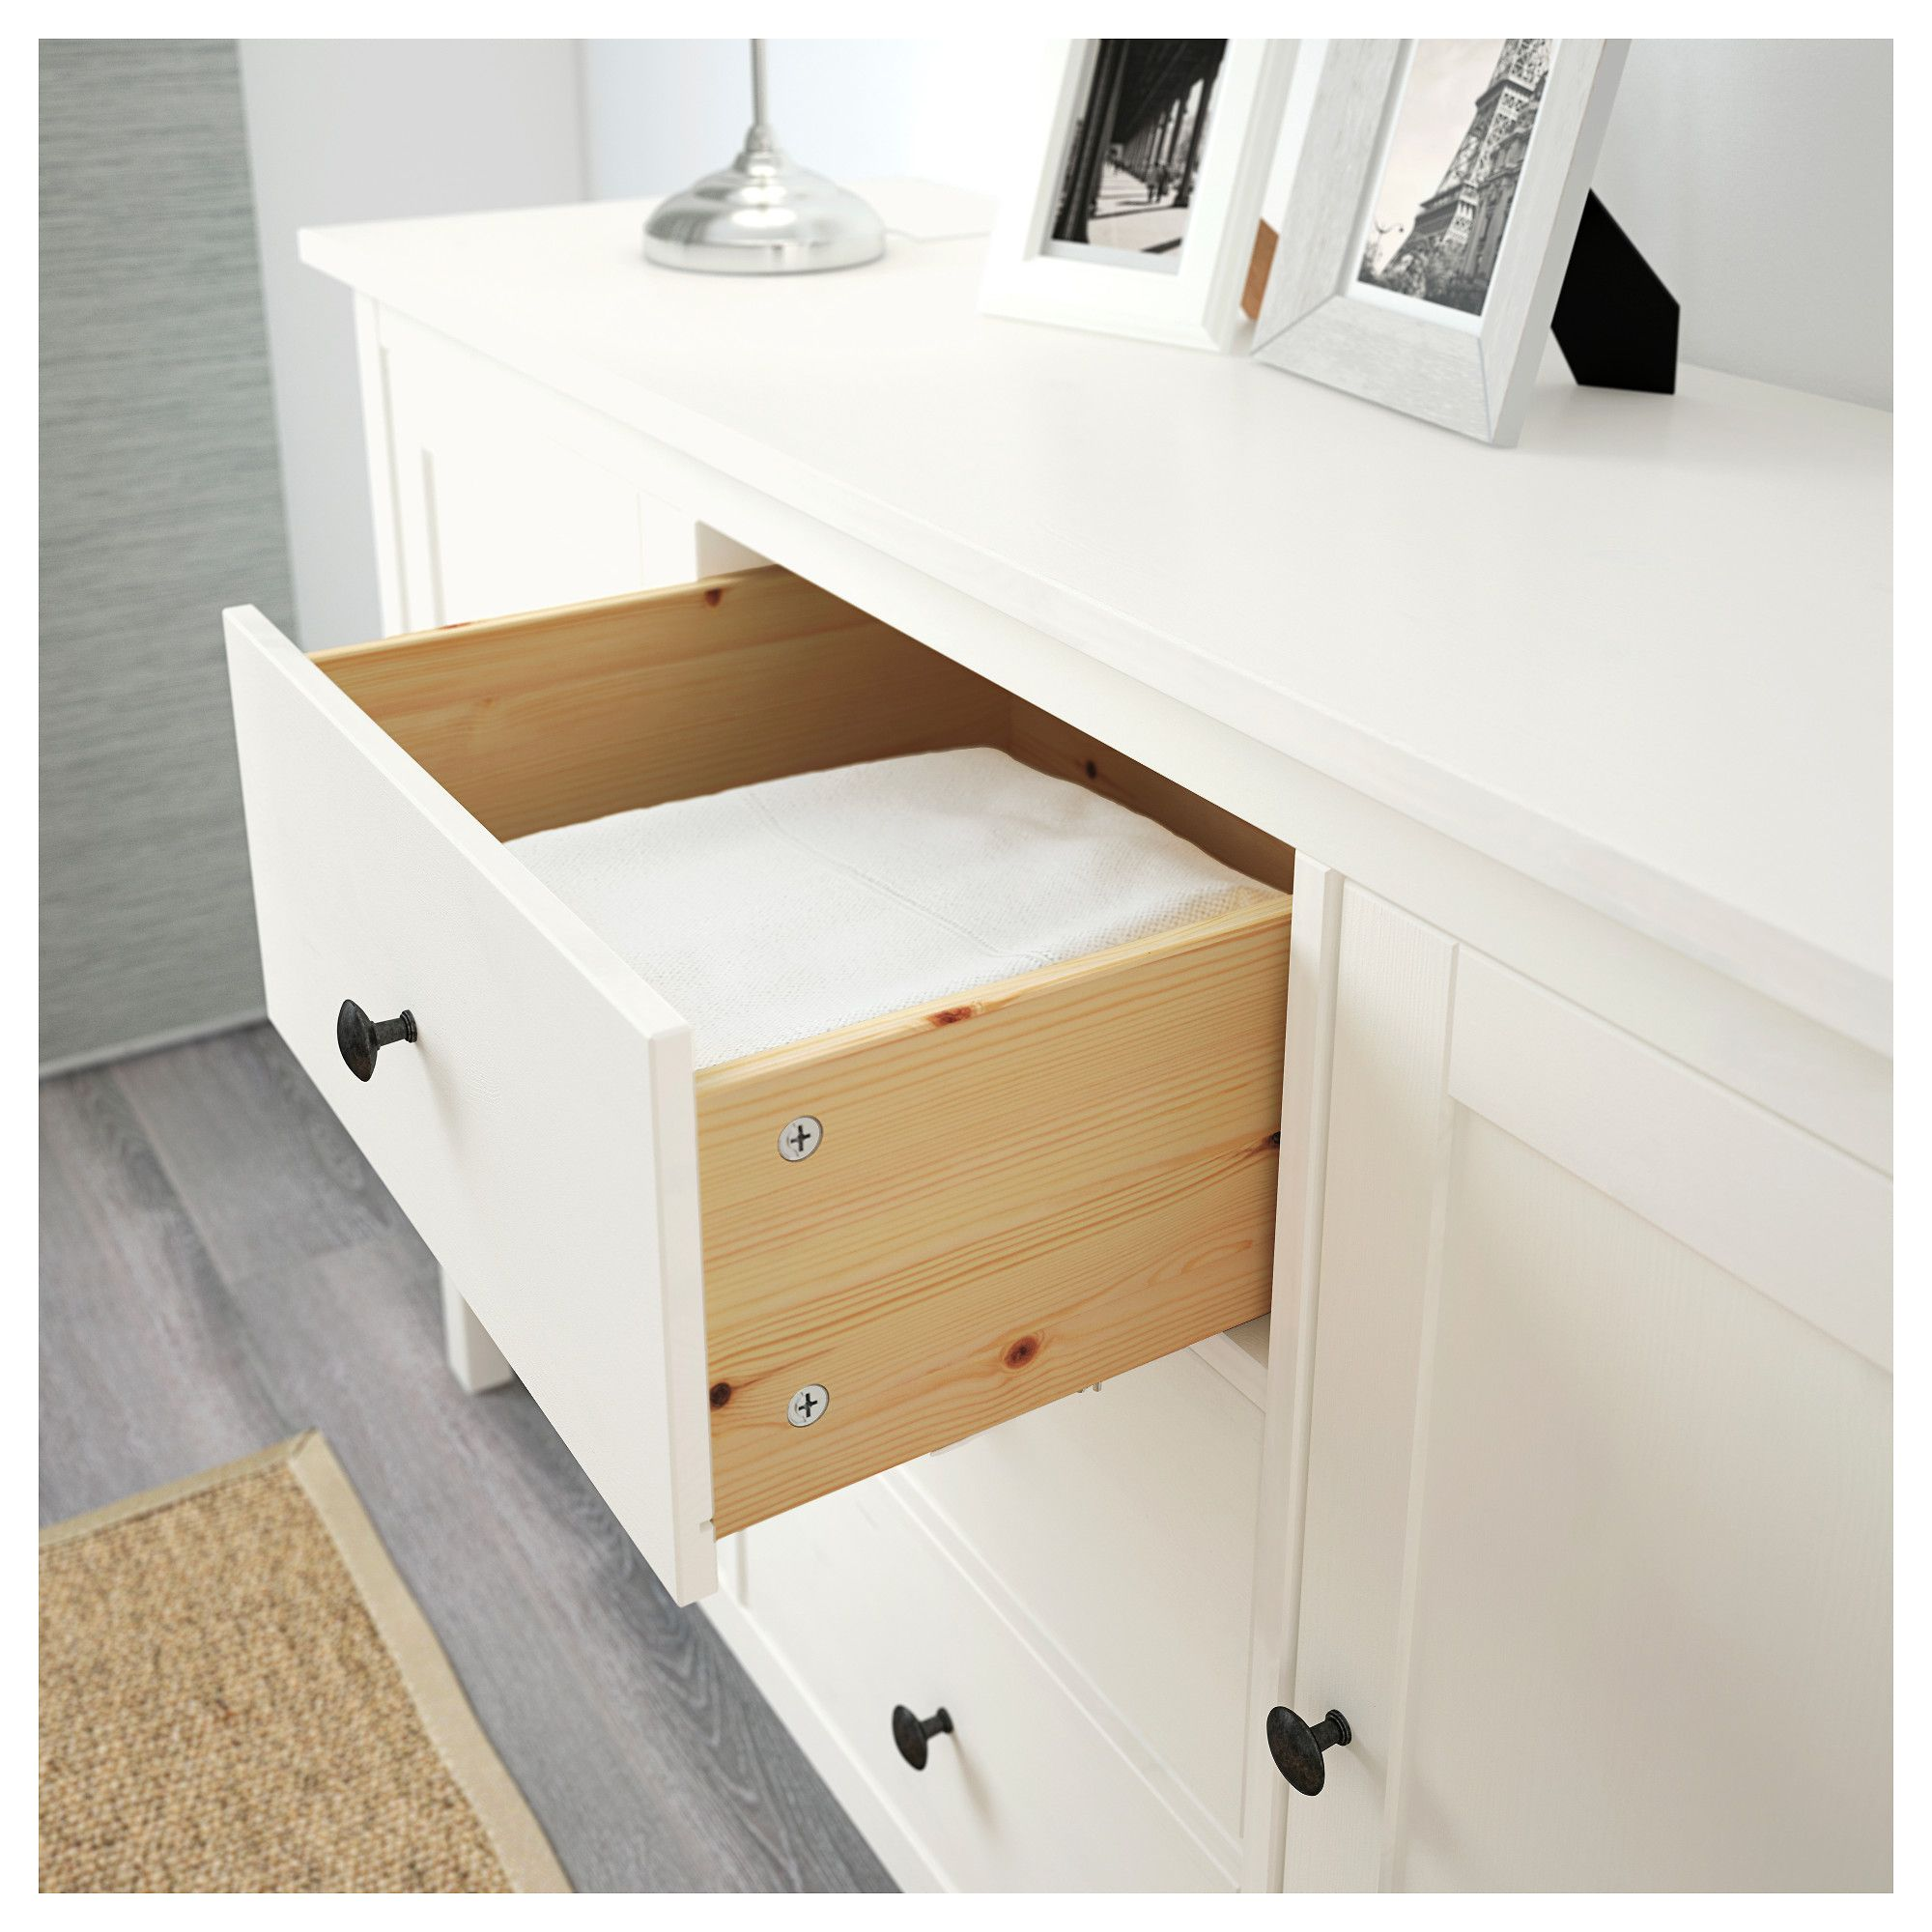 hemnes sideboard, white stain   products   pinterest   ikea